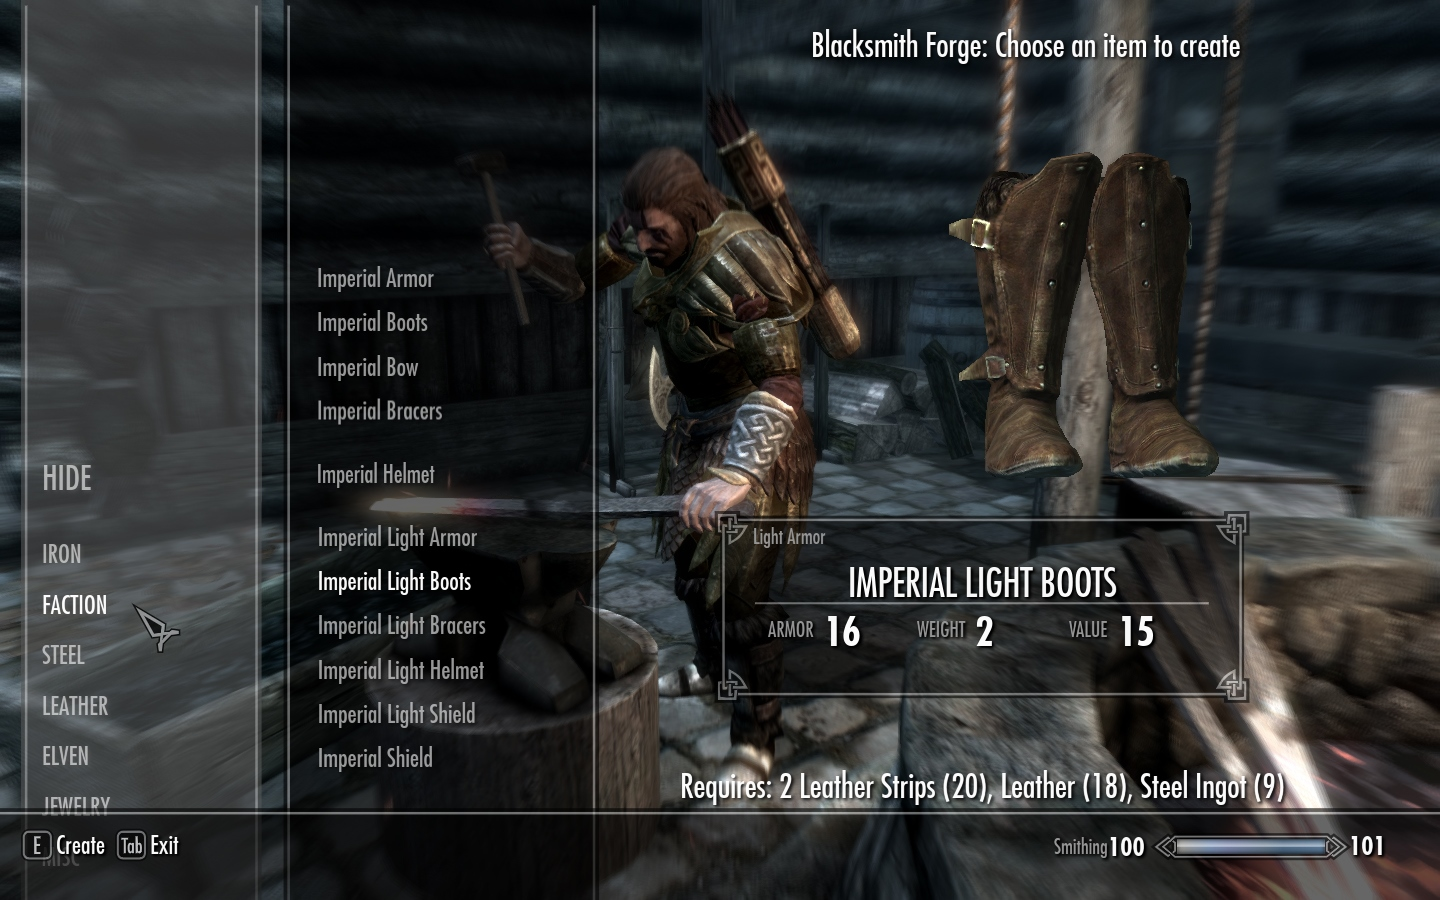 General fixes to followers skyrim download for mac